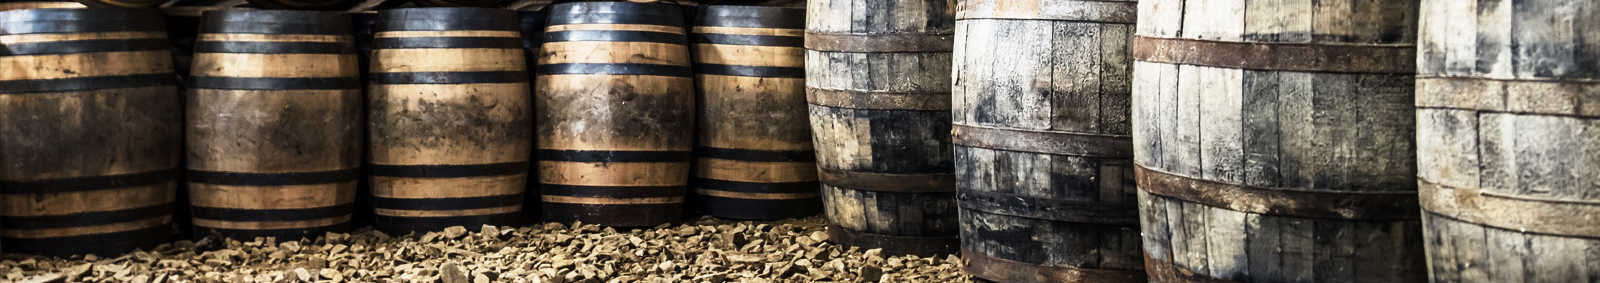 Scotland's Whisky Trail